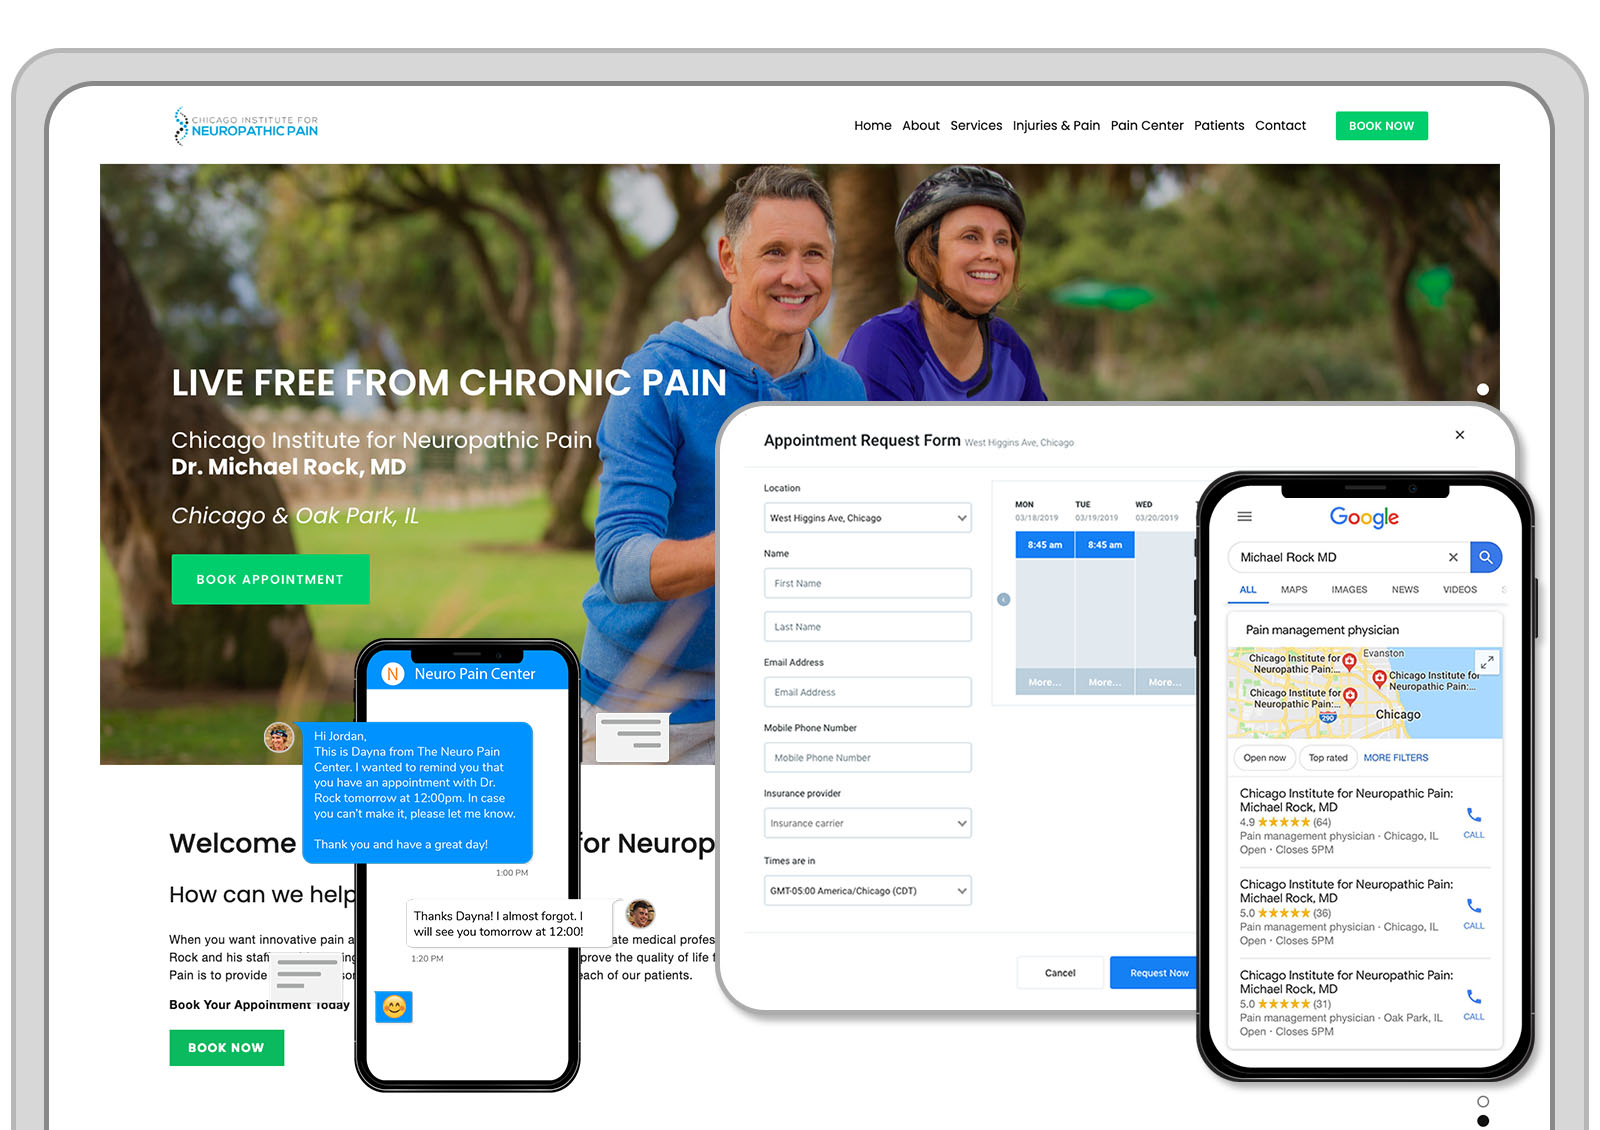 Transform your online presence with a new website. - Get a stunning fast mobile friendly website that showcases your practice and turns visitors into new patients. Contact us to get a free quote.